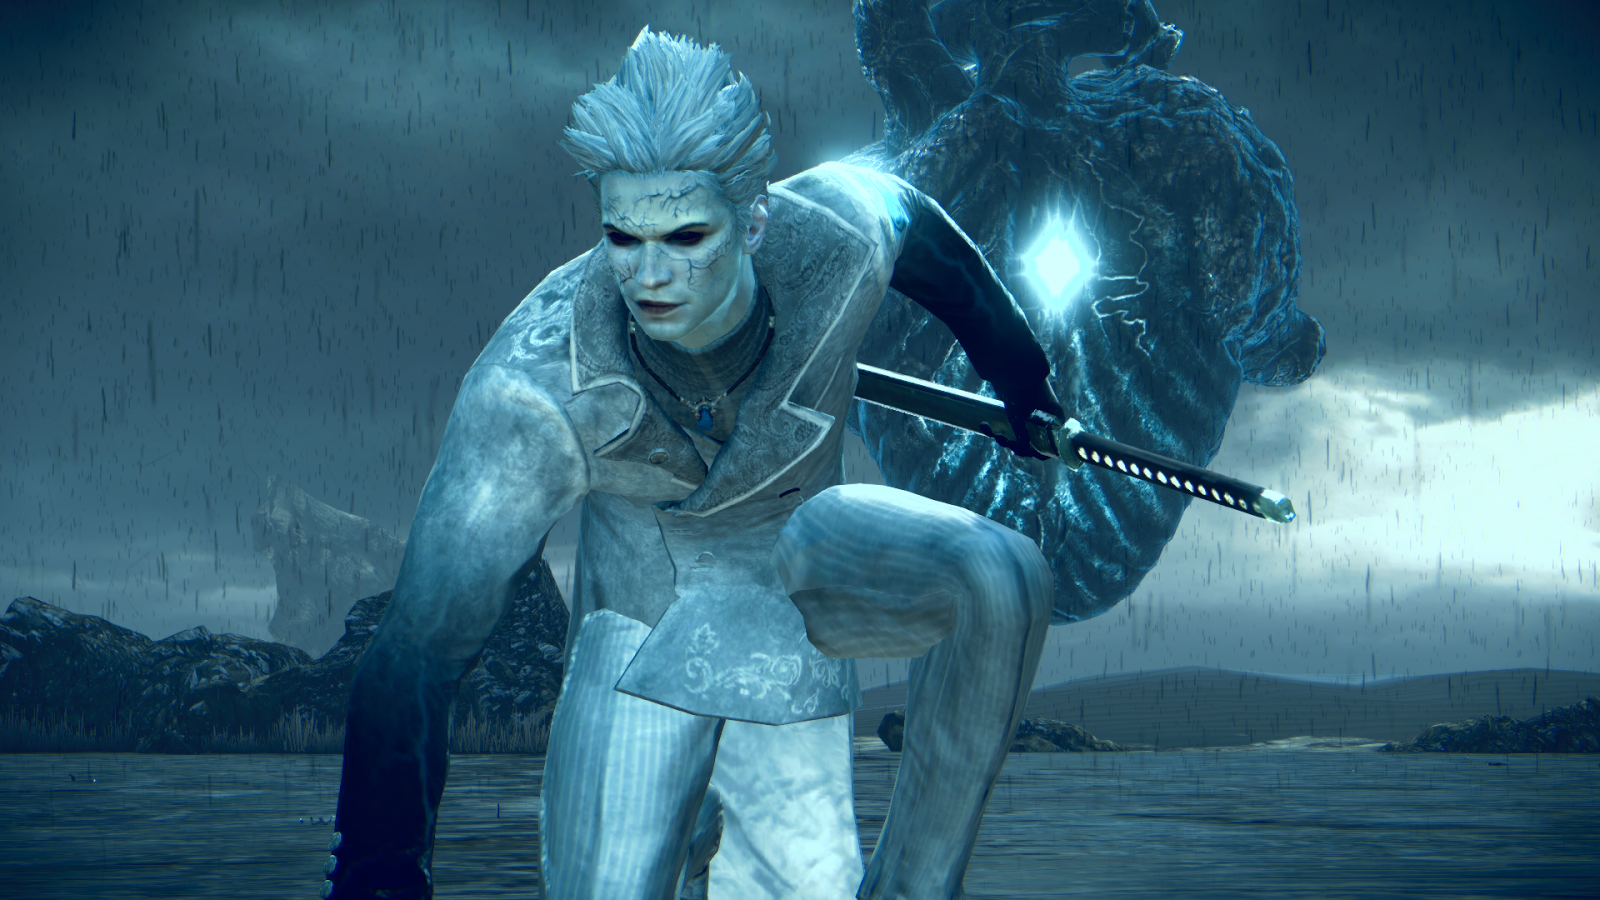 Anarchy in the galaxy dlc review dmc devil may cry vergils vergils downfall lasts a couple of hours and while most of what lies in wait is rather predictable the story does hold a couple of unexpected twists that voltagebd Choice Image